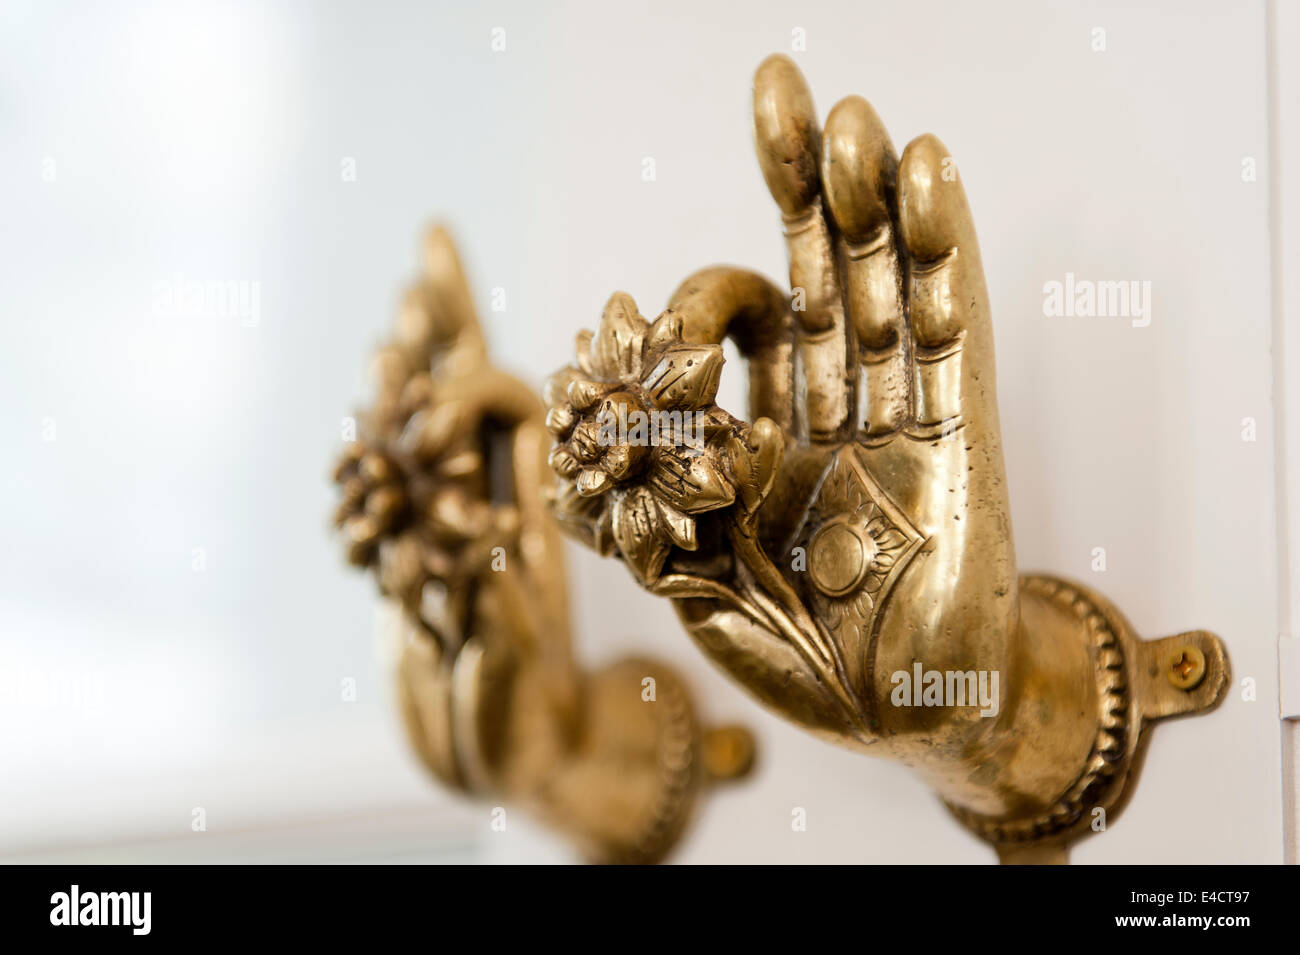 Door knobs in the shape of hands holding lotus flowers brought back ...